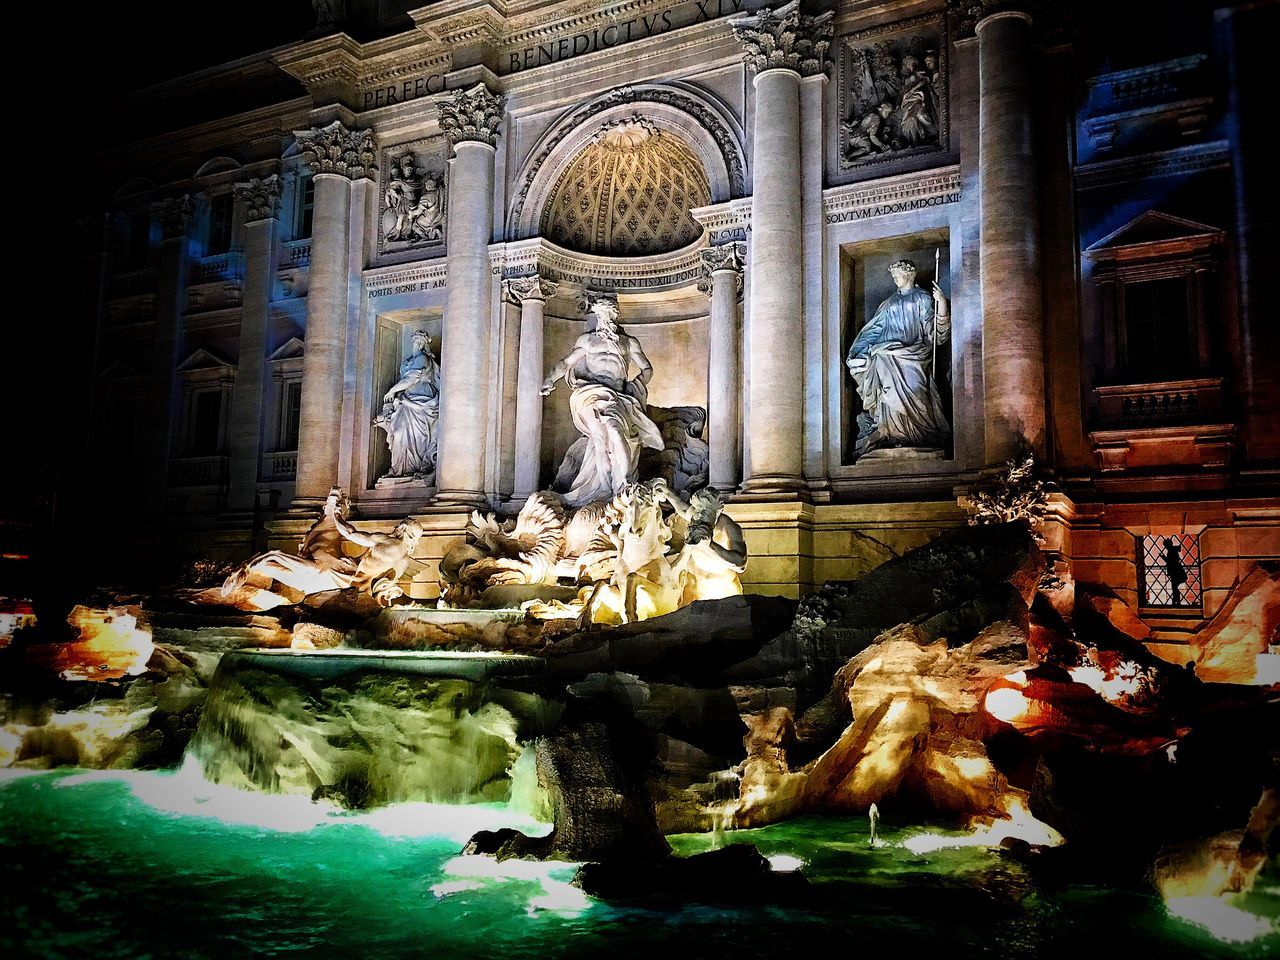 Statue Human Representation Sculpture Religion Male Likeness Art And Craft Female Likeness Spirituality City Indoors  No People Illuminated Place Of Worship Sculpted Architecture Water Day Fontana Di Trevi